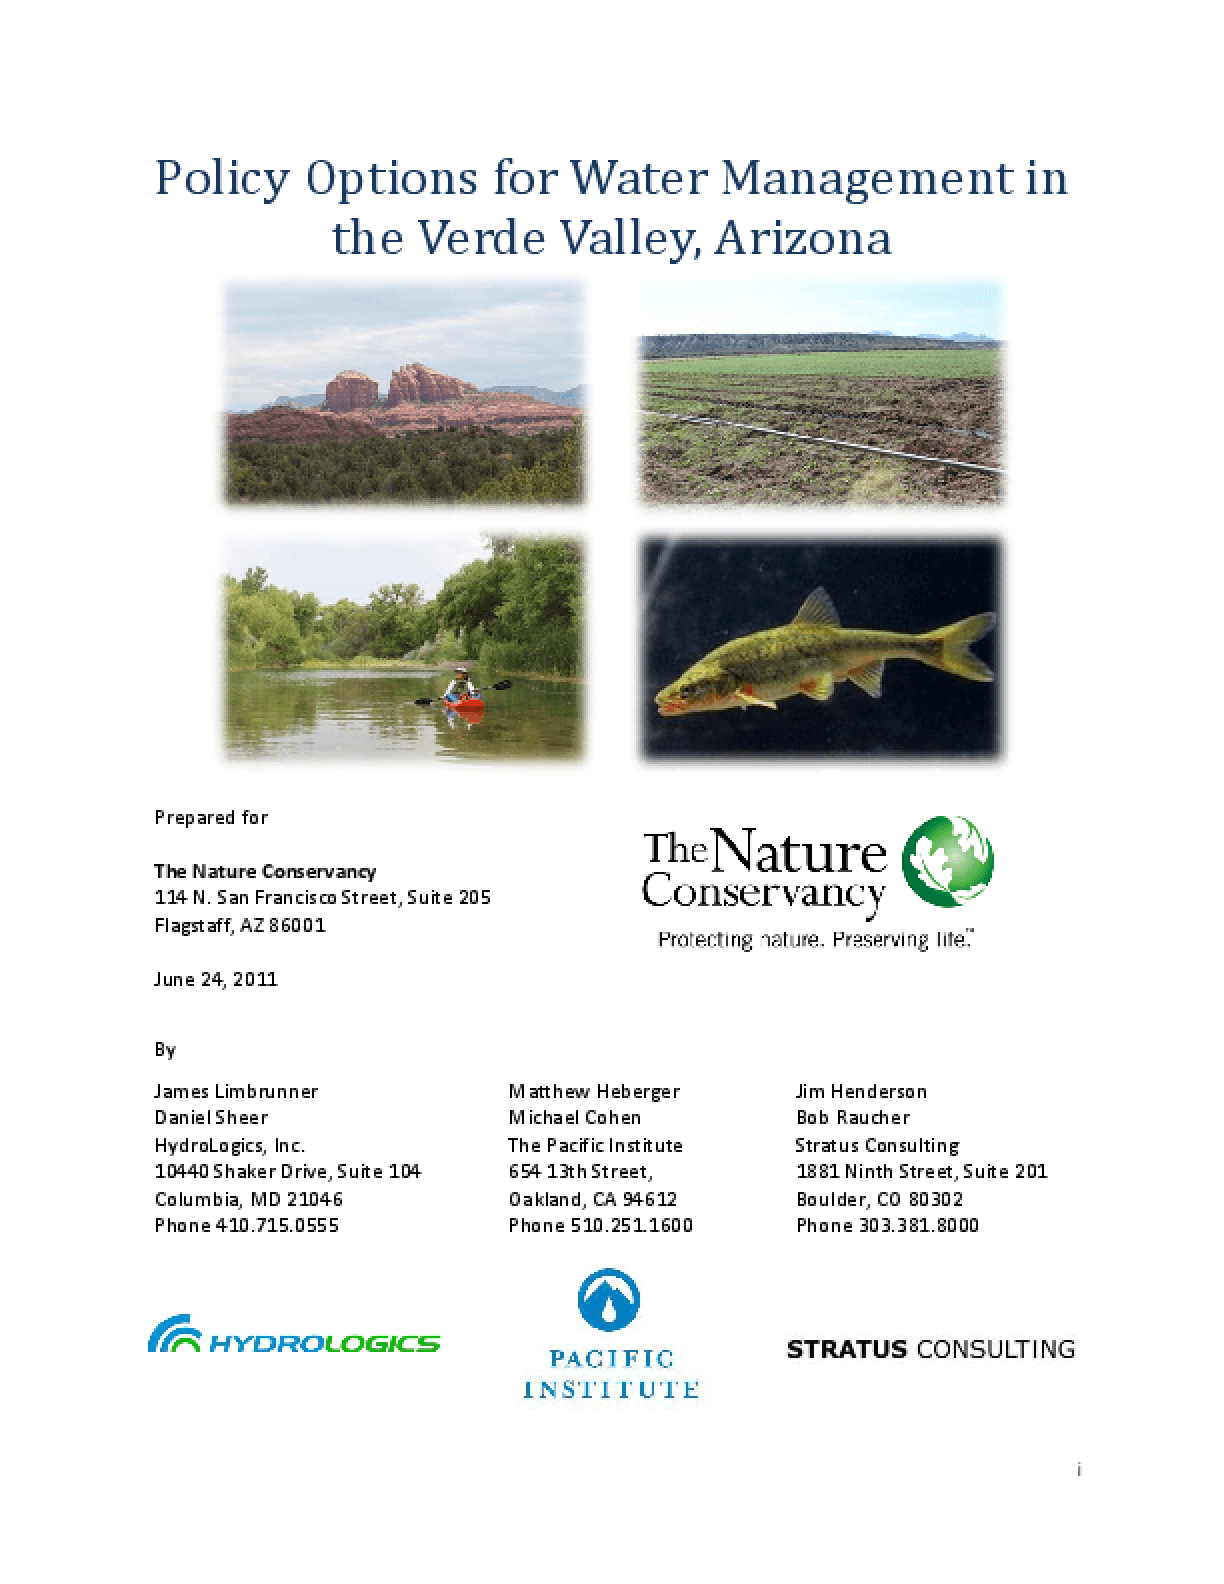 Policy Options for Water Management in the Verde Valley, Arizona (Executive Summary)